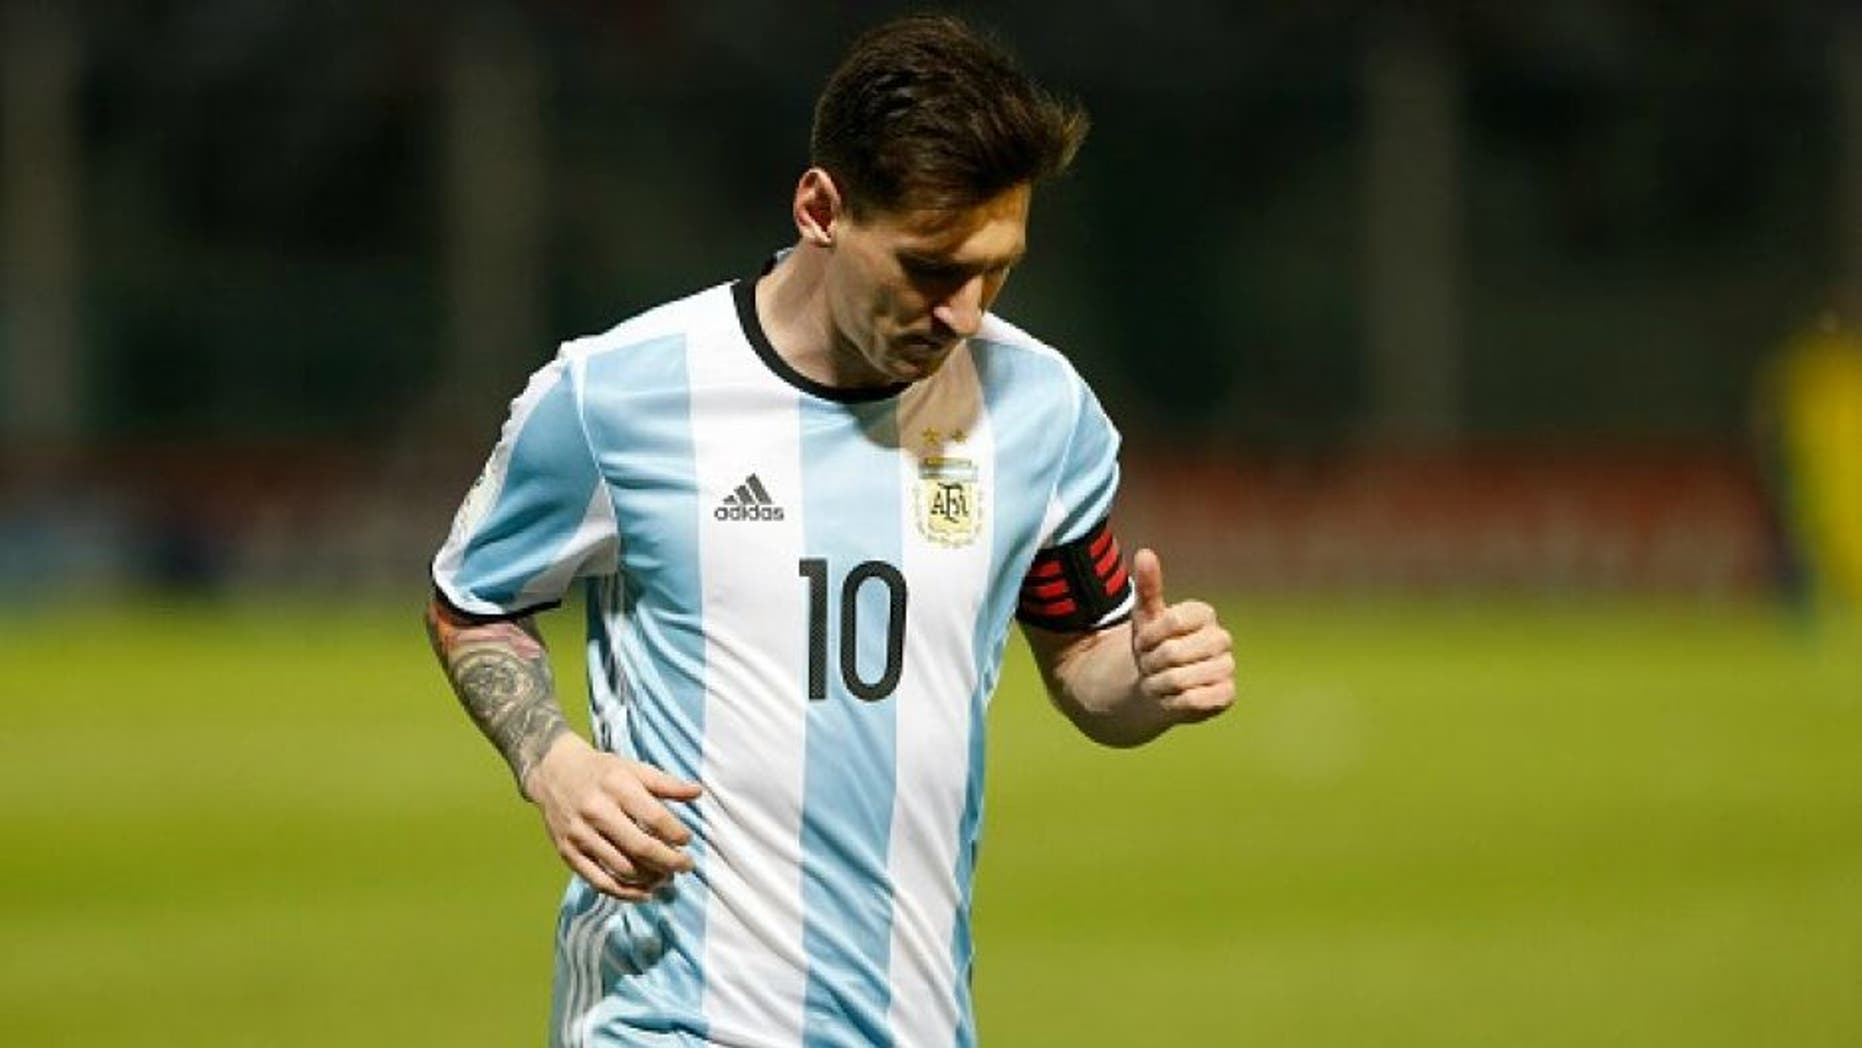 CORDOBA, ARGENTINA - MARCH 29: Lionel Messi of Argentina in action during a match between Argentina and Bolivia as part of FIFA 2018 World Cup Qualifiers at Mario Alberto Kempes Stadium on March 29, 2016 in Cordoba, Argentina. (Photo by Gabriel Rossi/LatinContent/Getty Images)